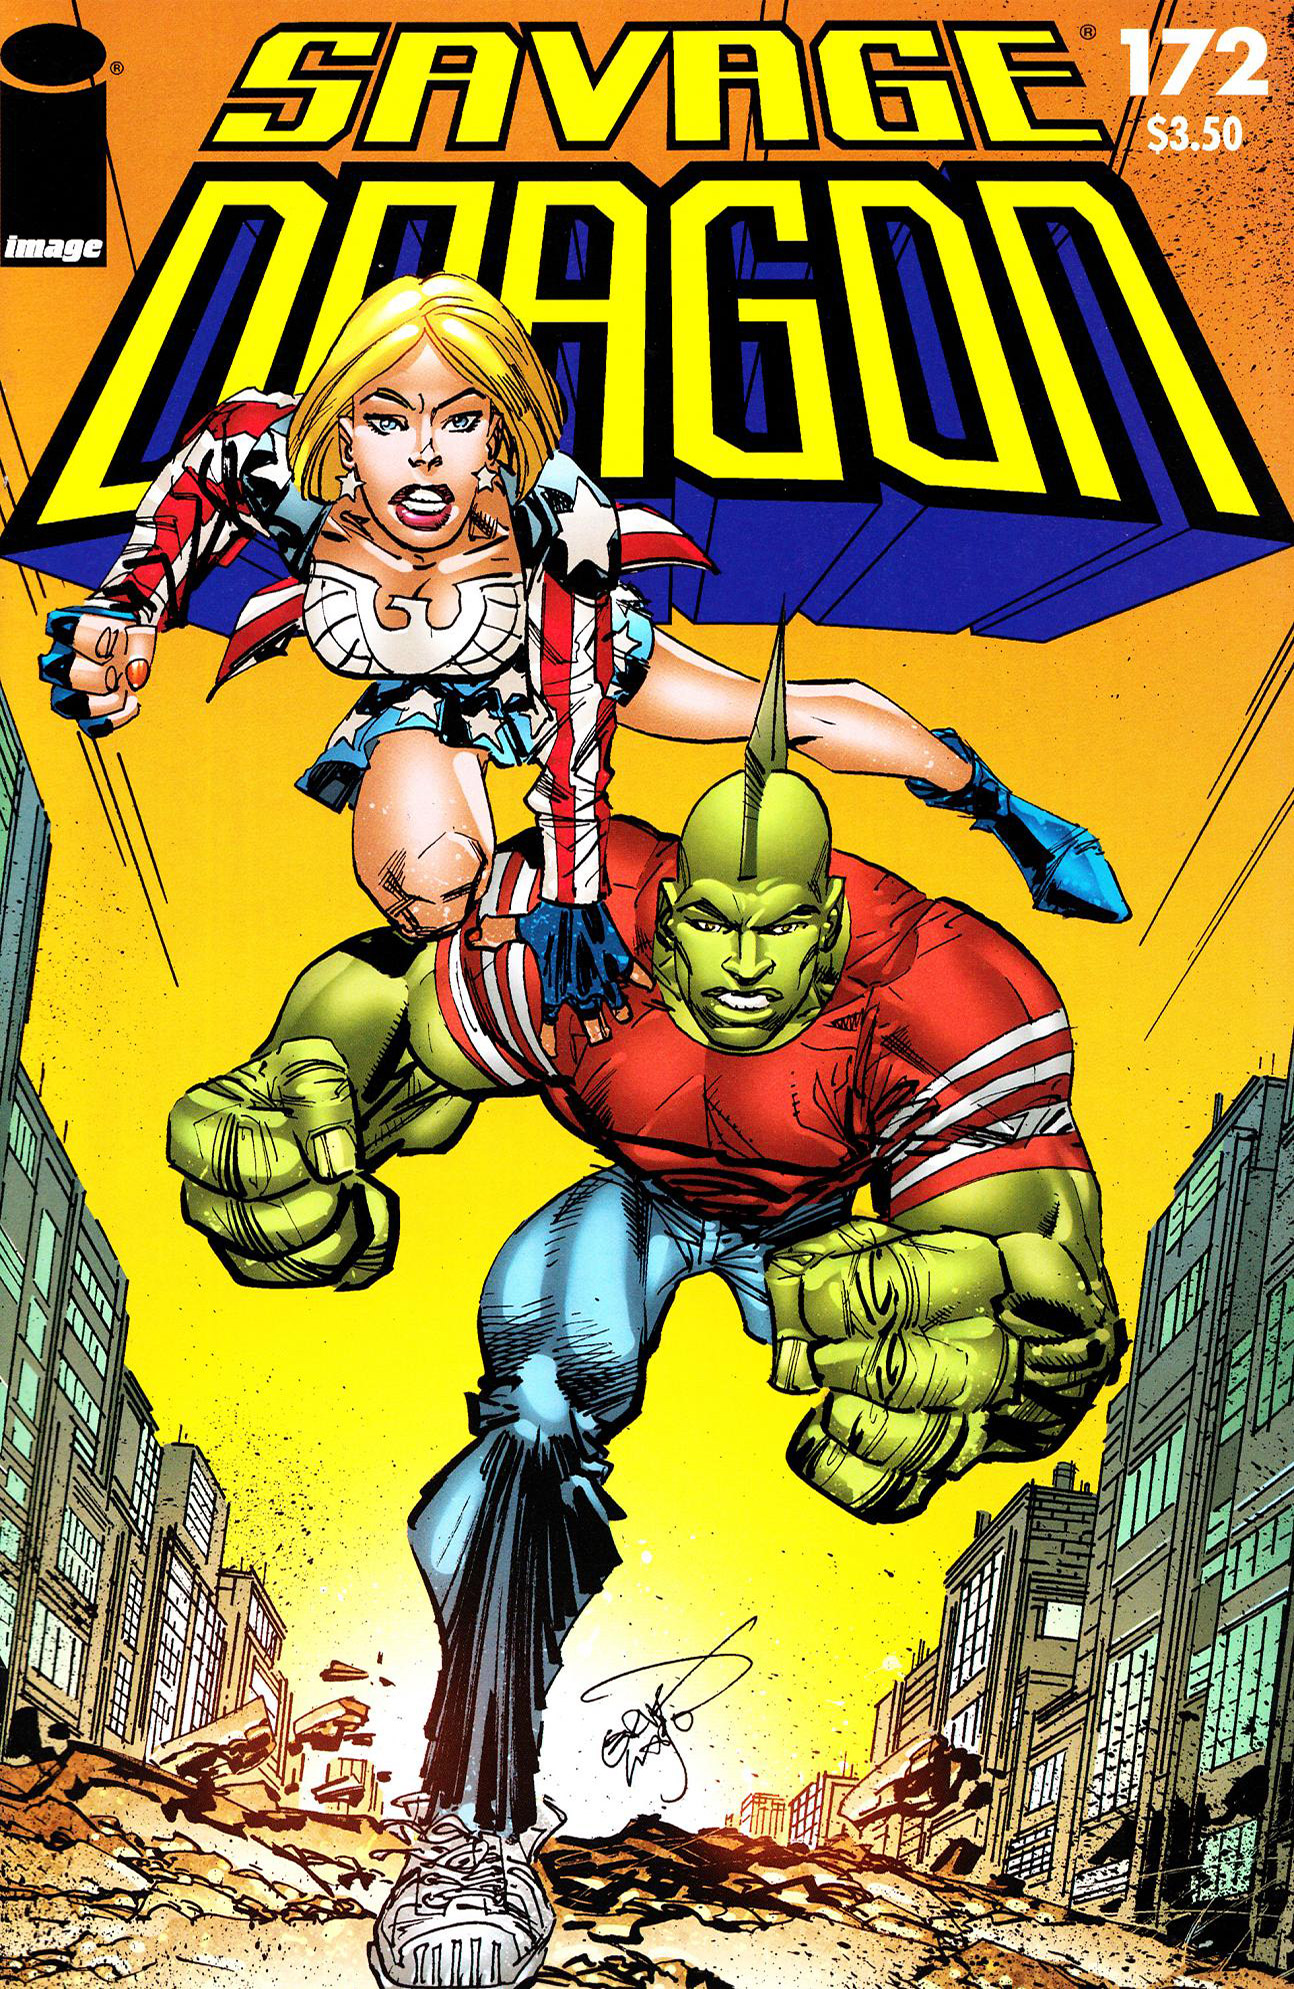 Cover Savage Dragon Vol.2 #172